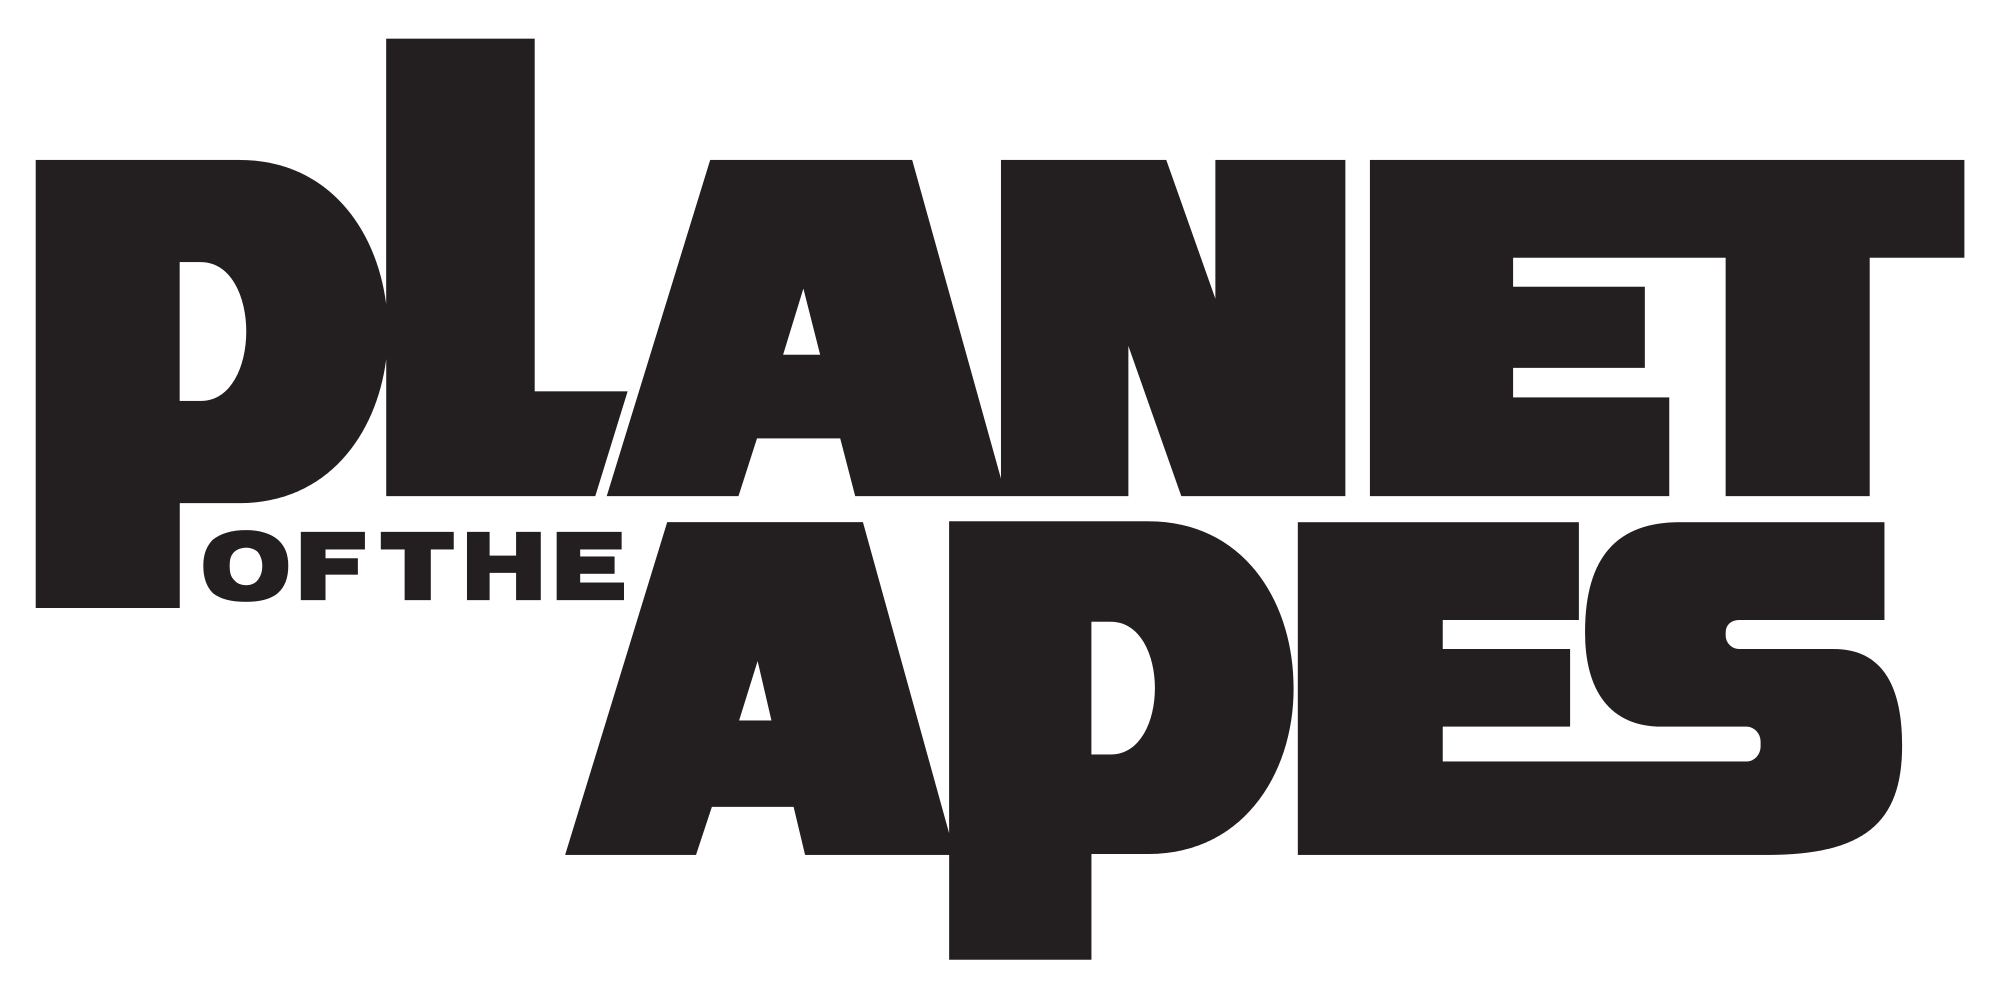 war for the planet of the apes logo png